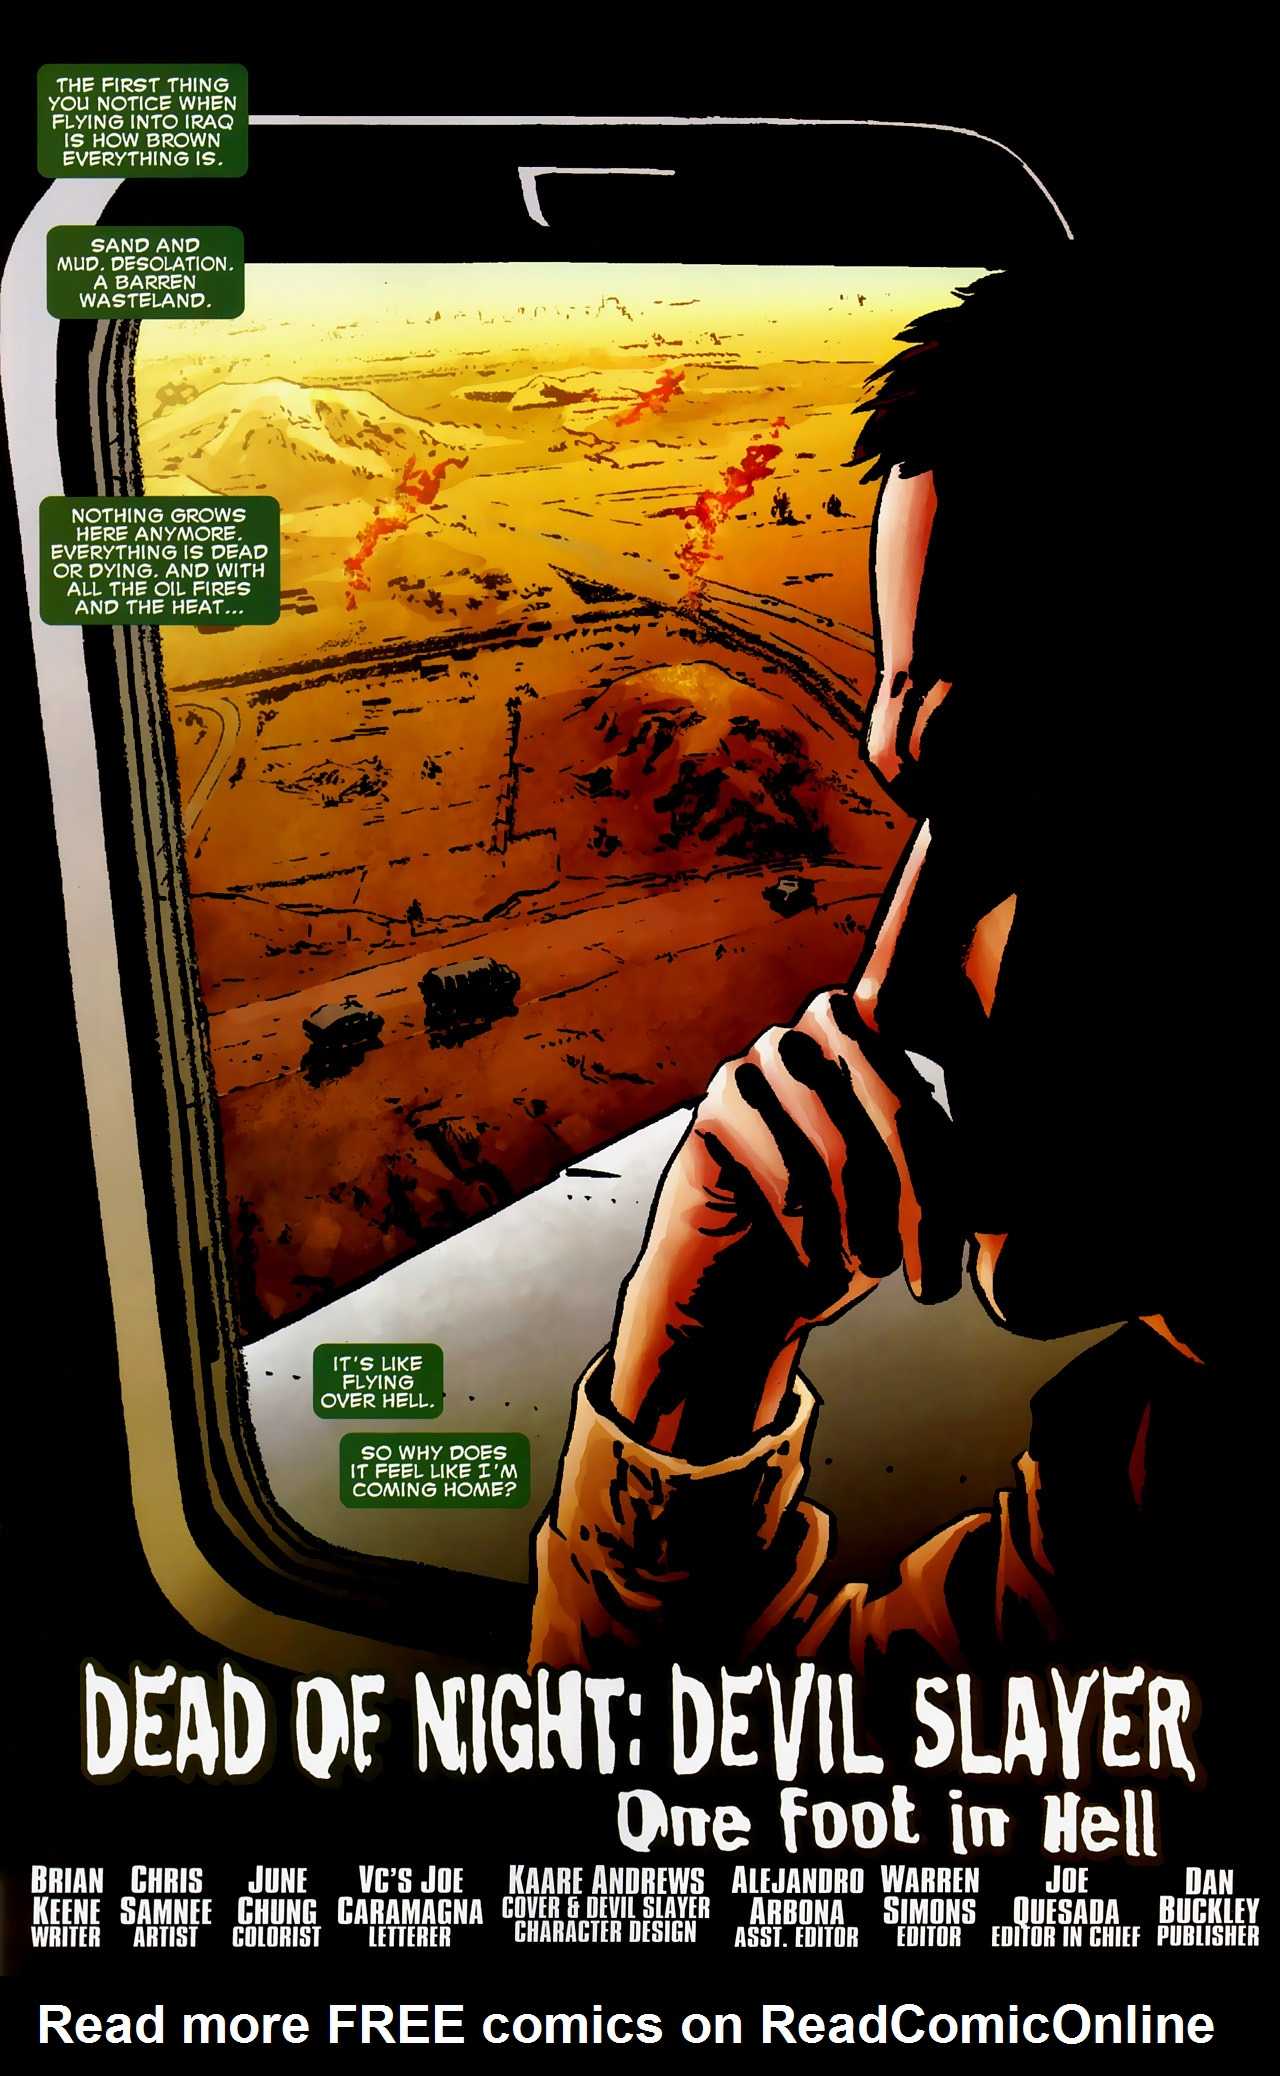 Read online Dead of Night Featuring Devil-Slayer comic -  Issue #1 - 2